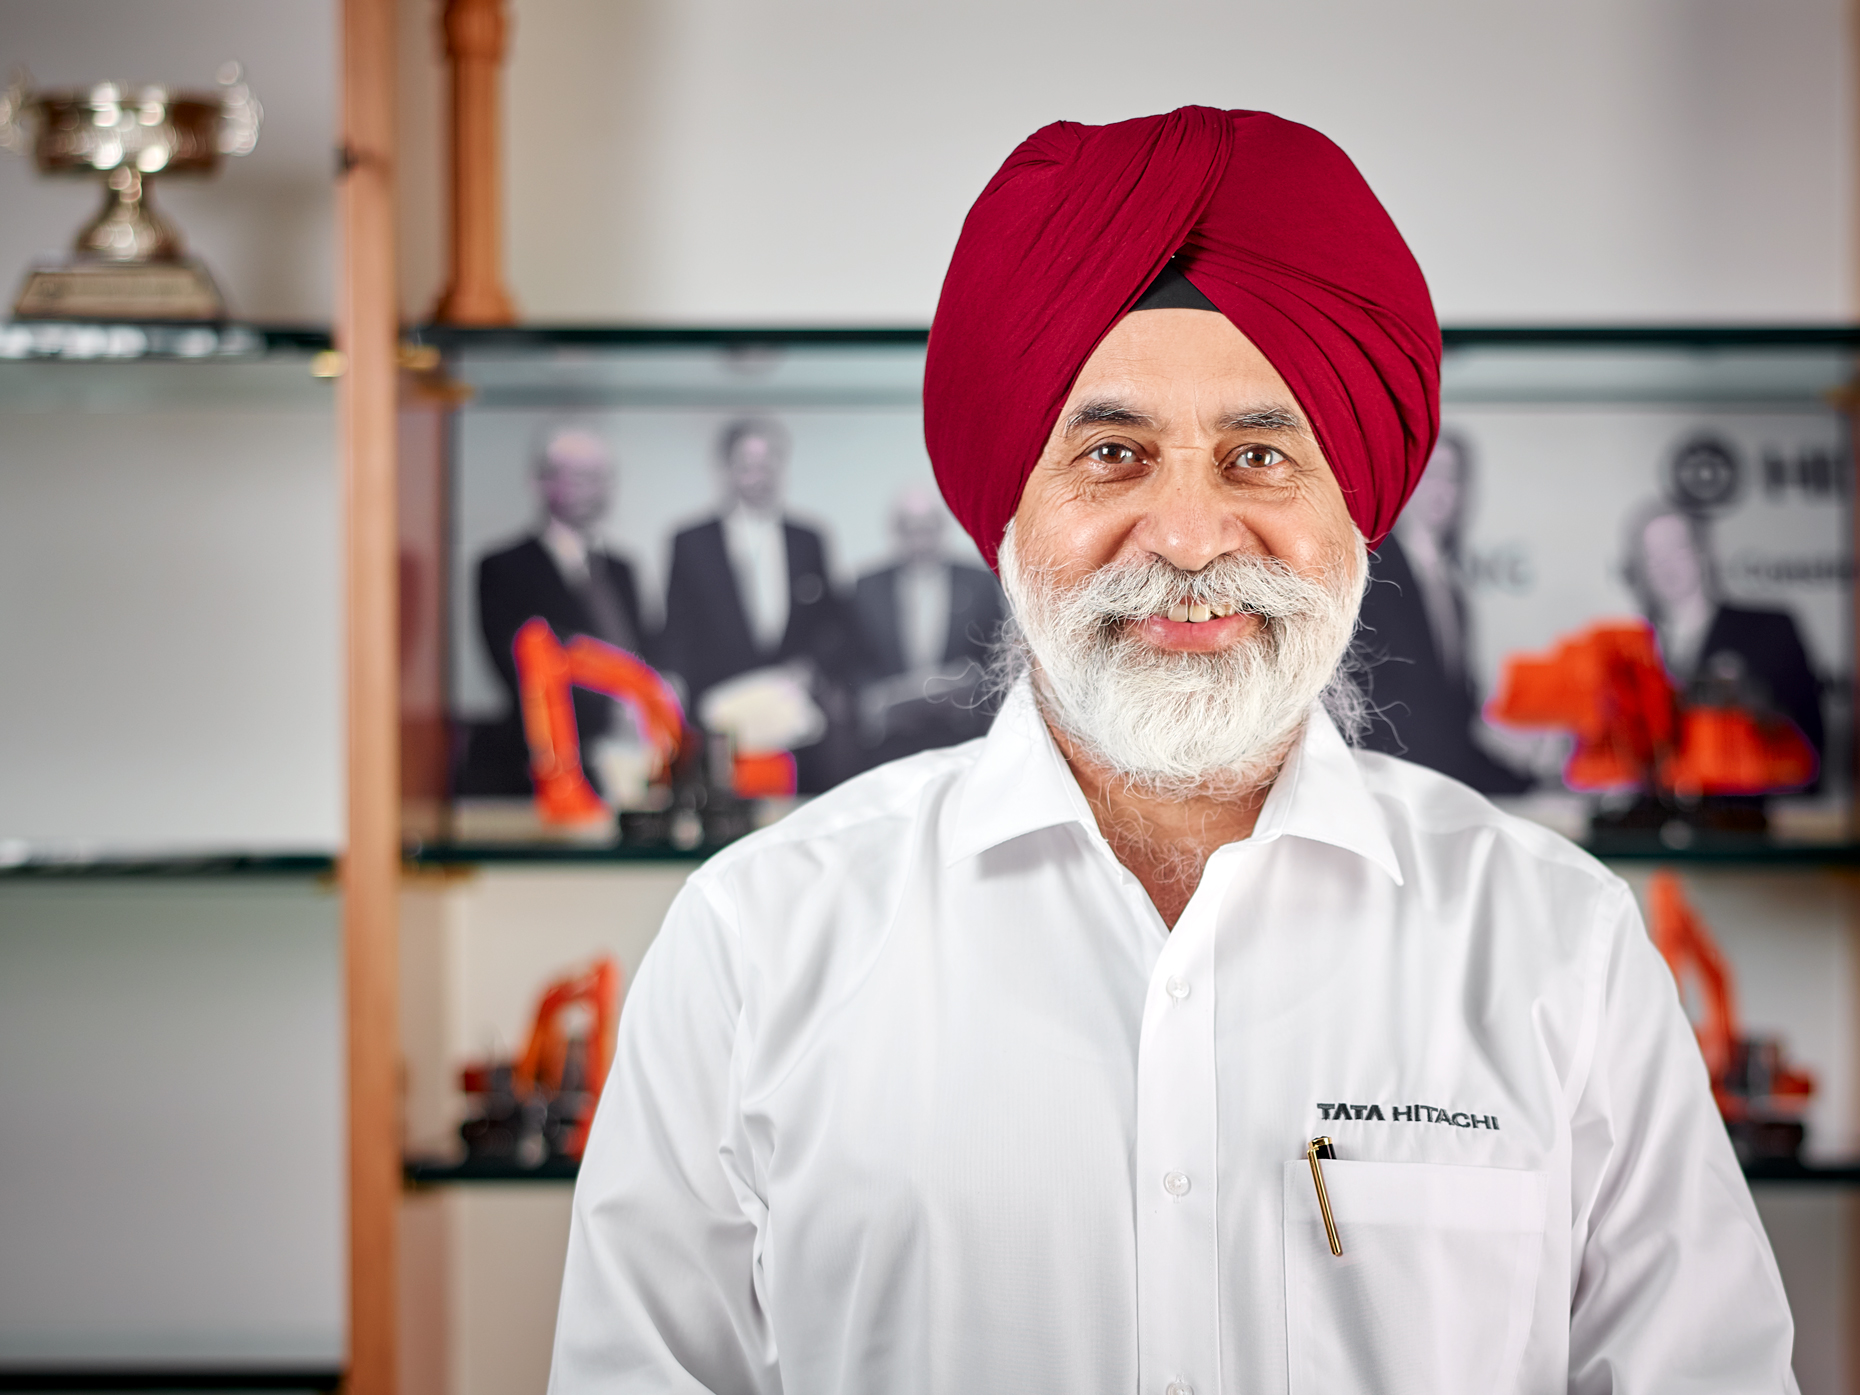 Corporate portrait of MD, Tata Hitachi